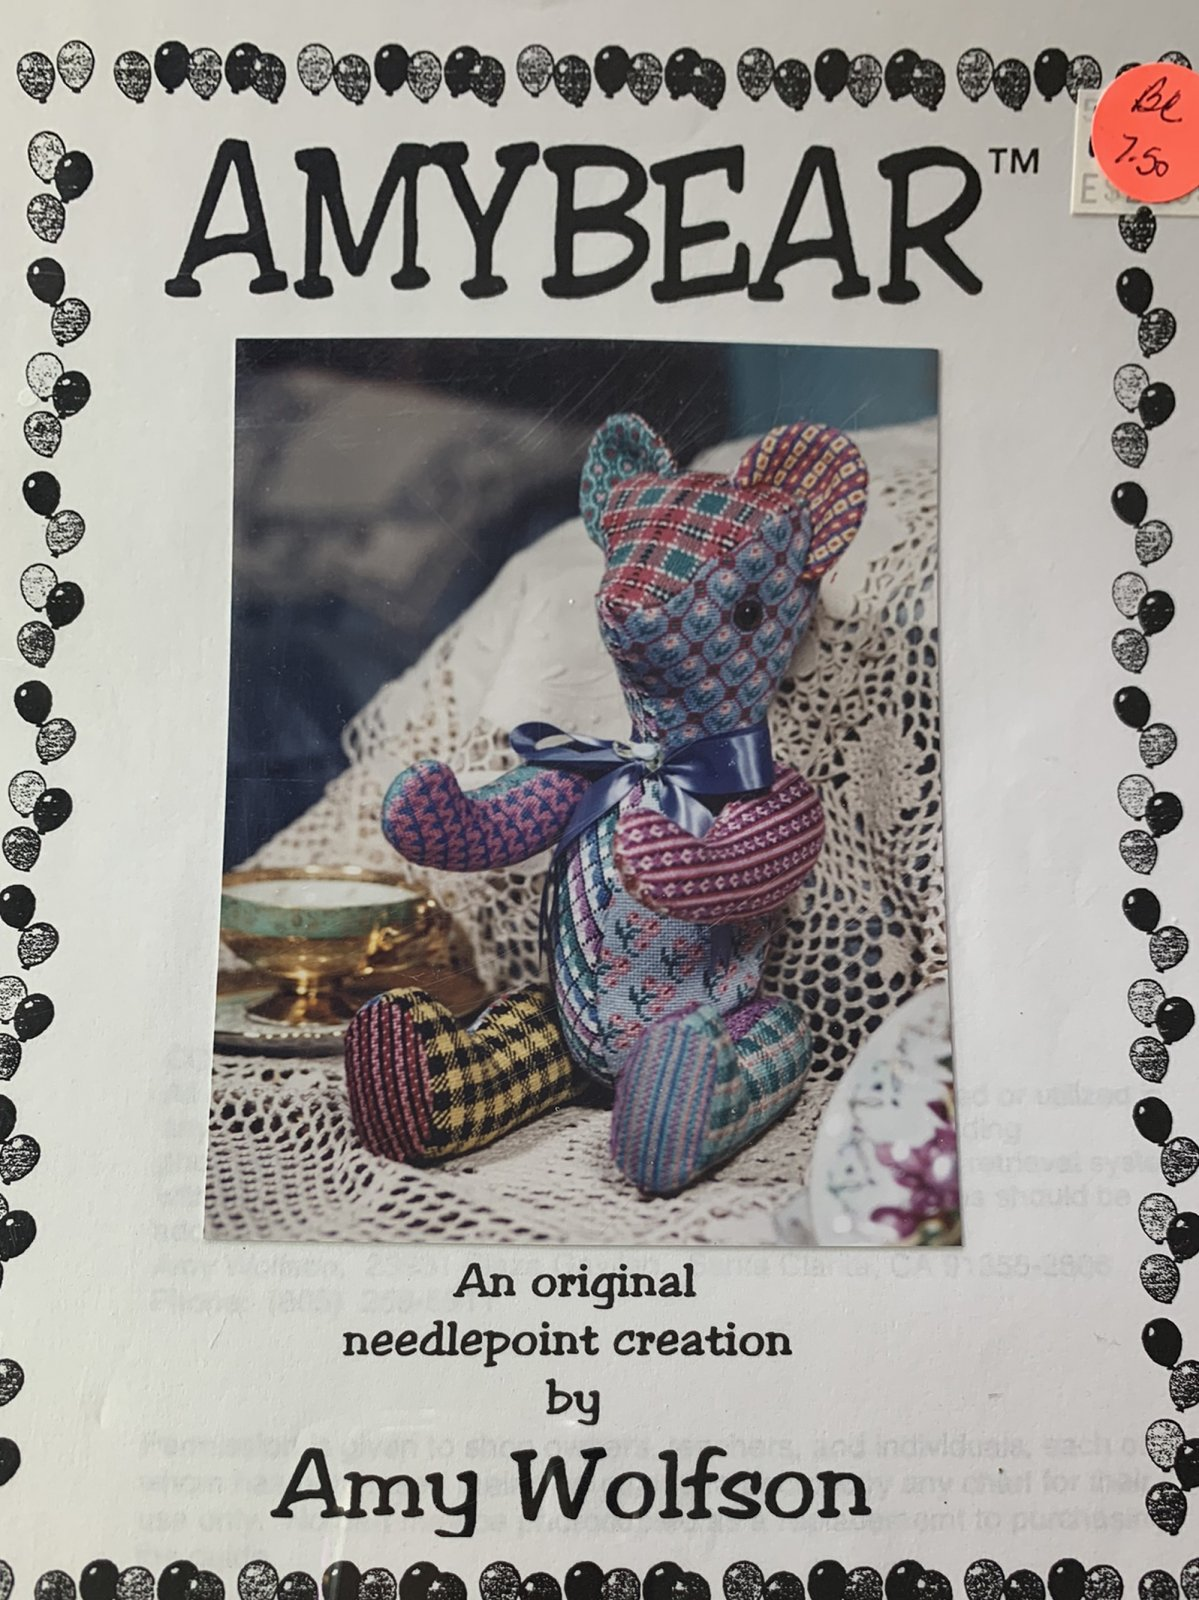 AMYBEAR-ORIGINAL NEEDLEPOINT-BY AMY WOLFSON